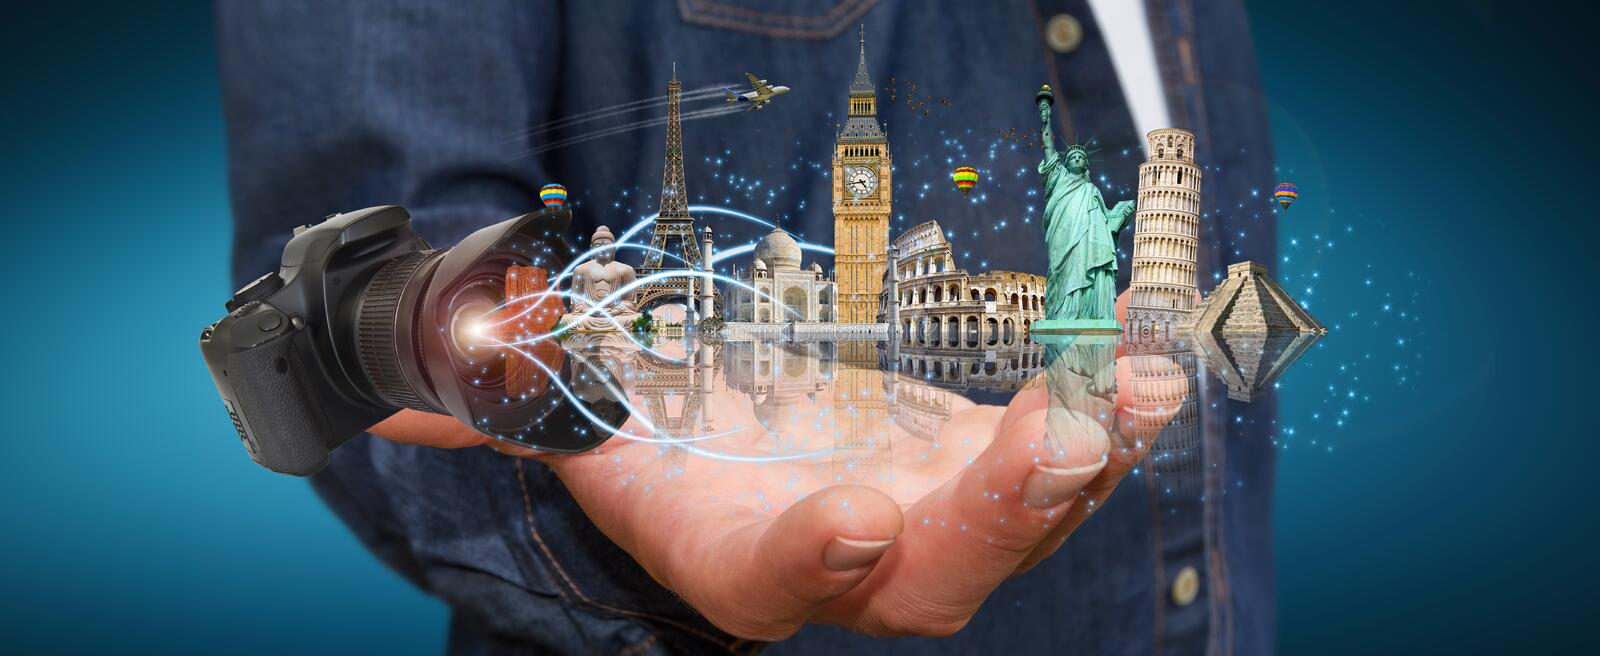 Man traveling the world with his digital camera stock illustration